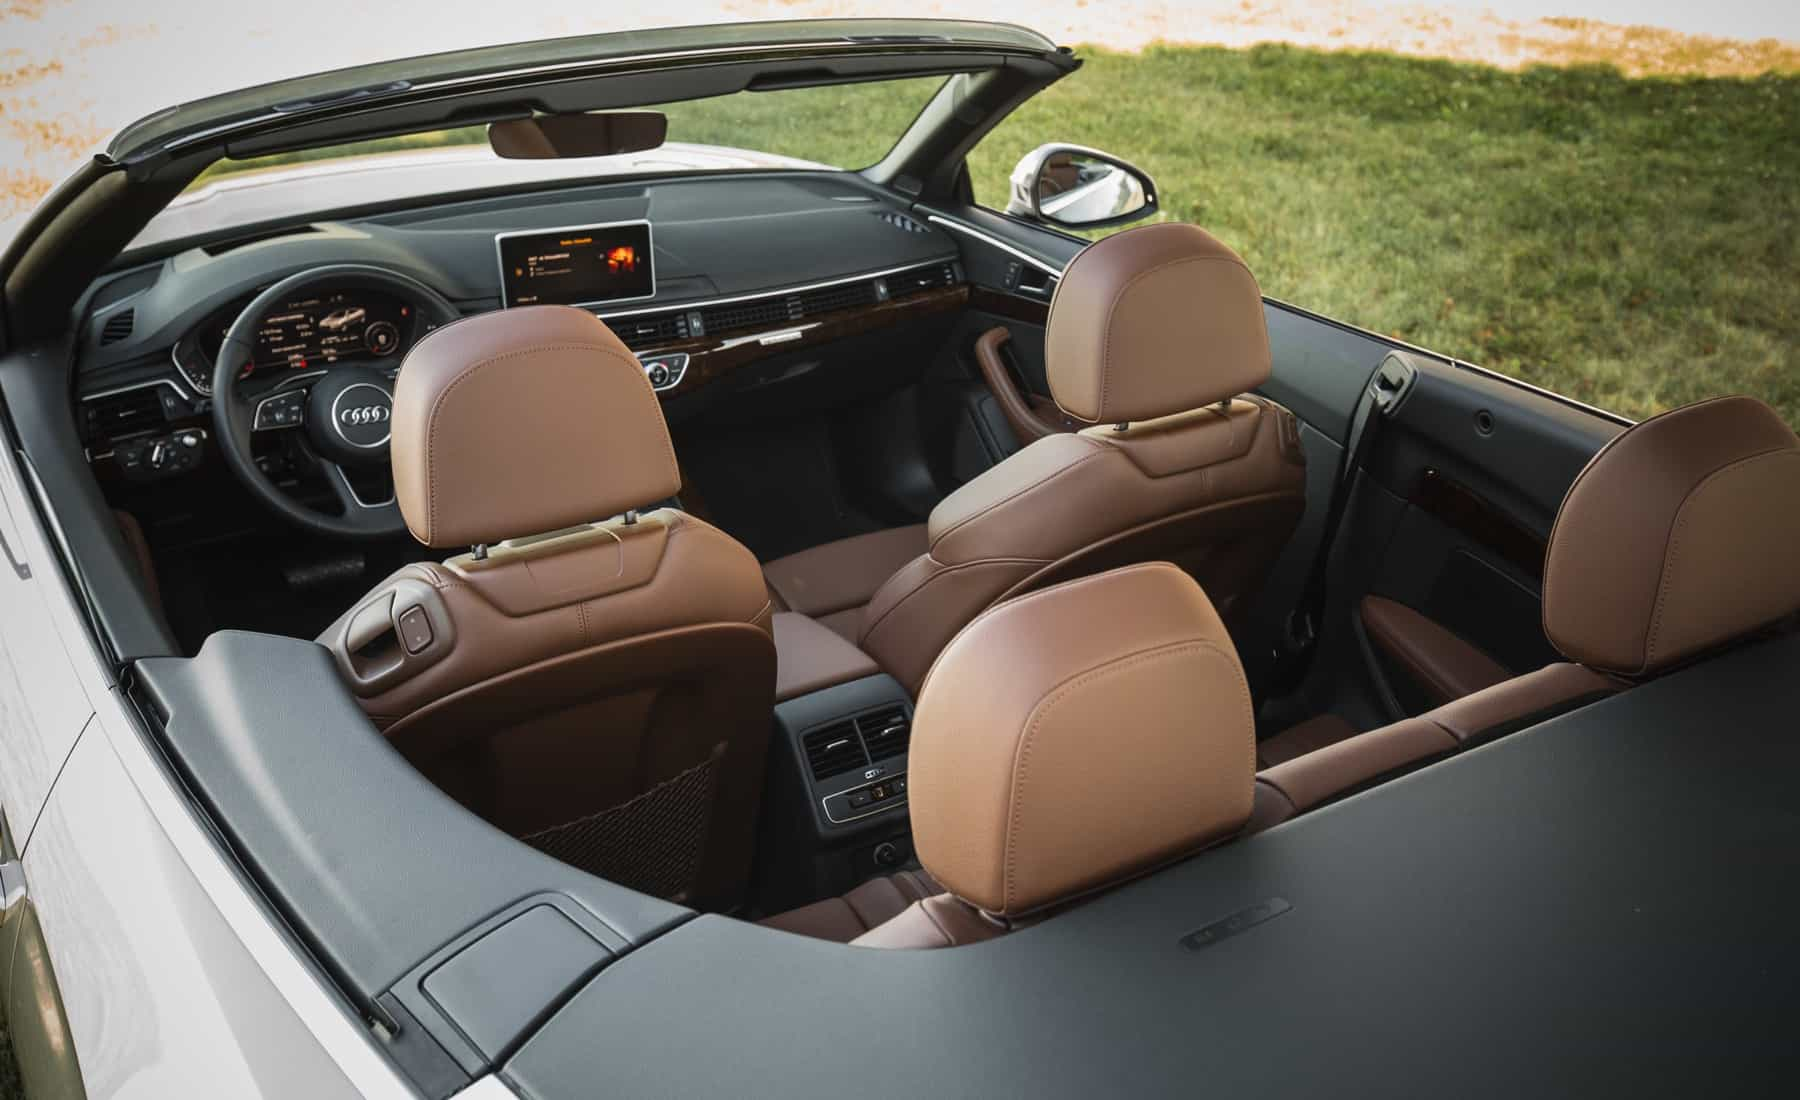 2018 Audi A5 Cabriolet Interior (Photo 18 of 45)